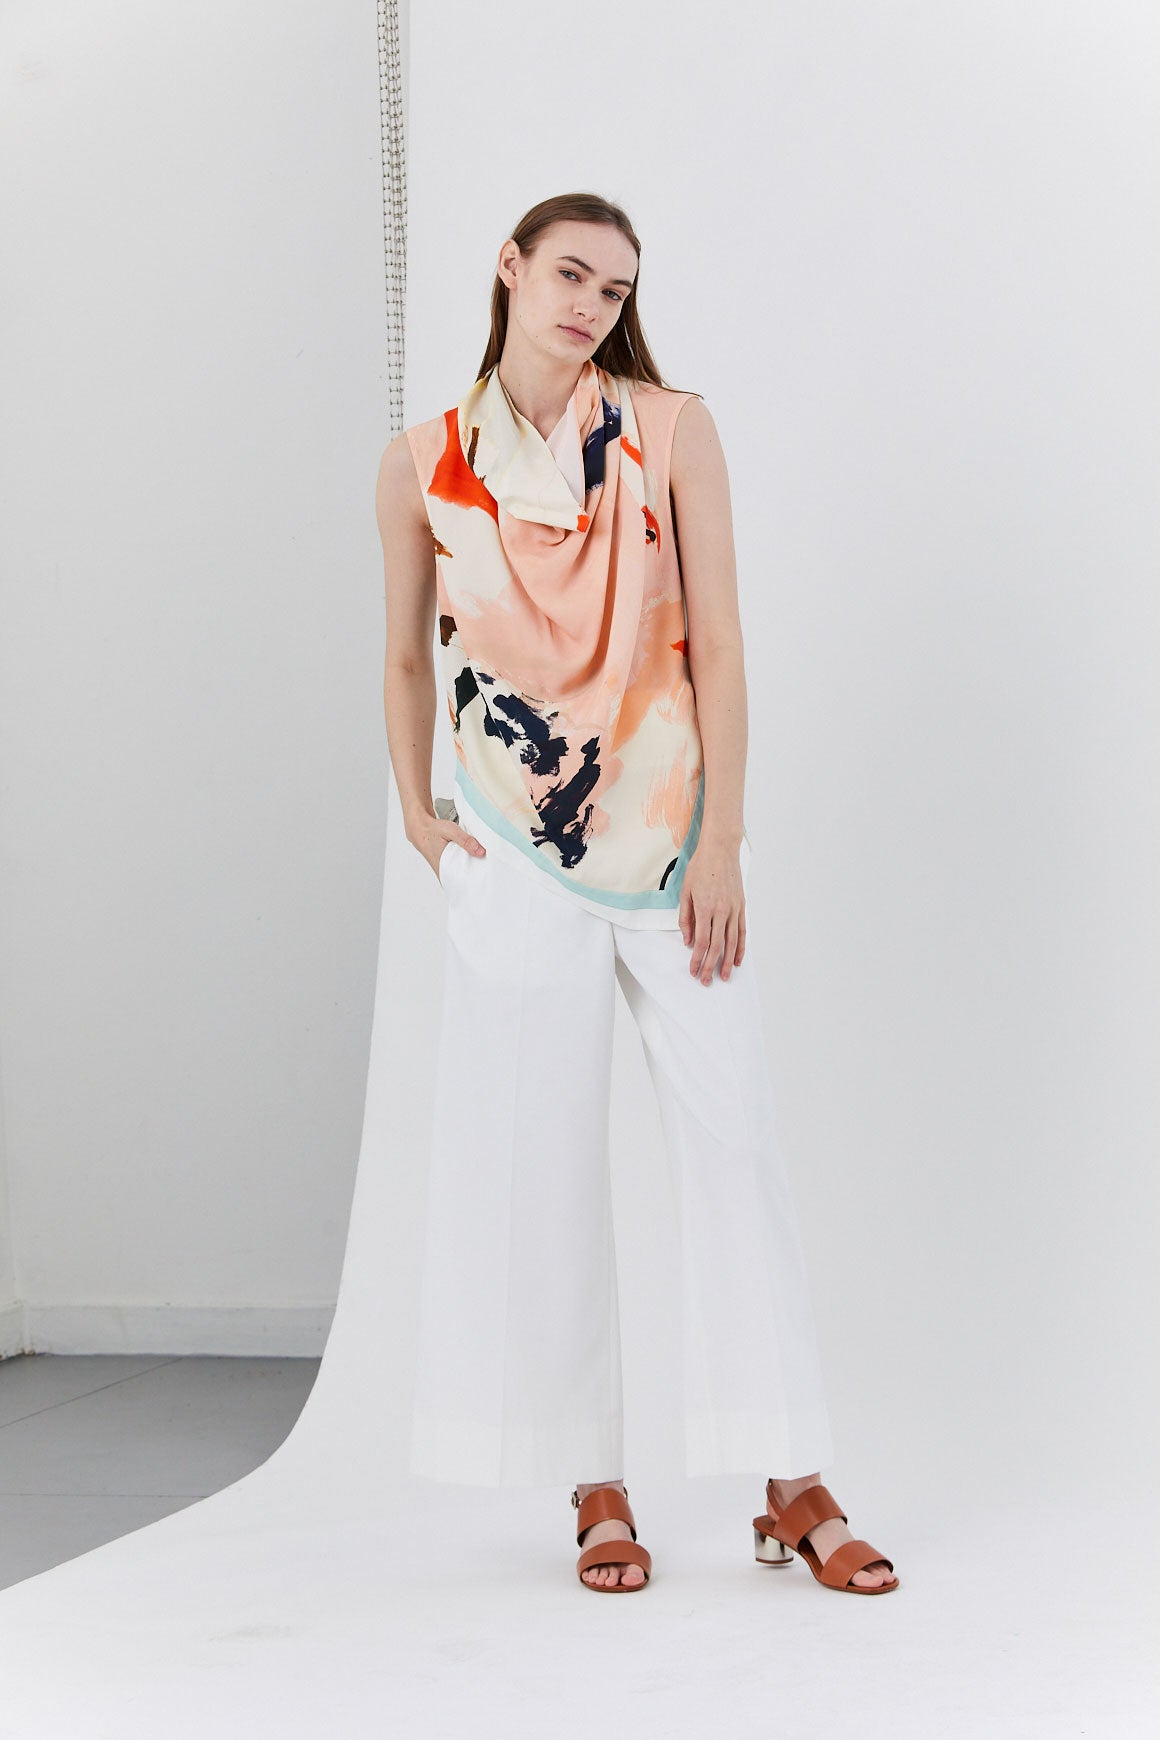 PROENZA - Cowl Top, Pink/Jade Abstract Paint